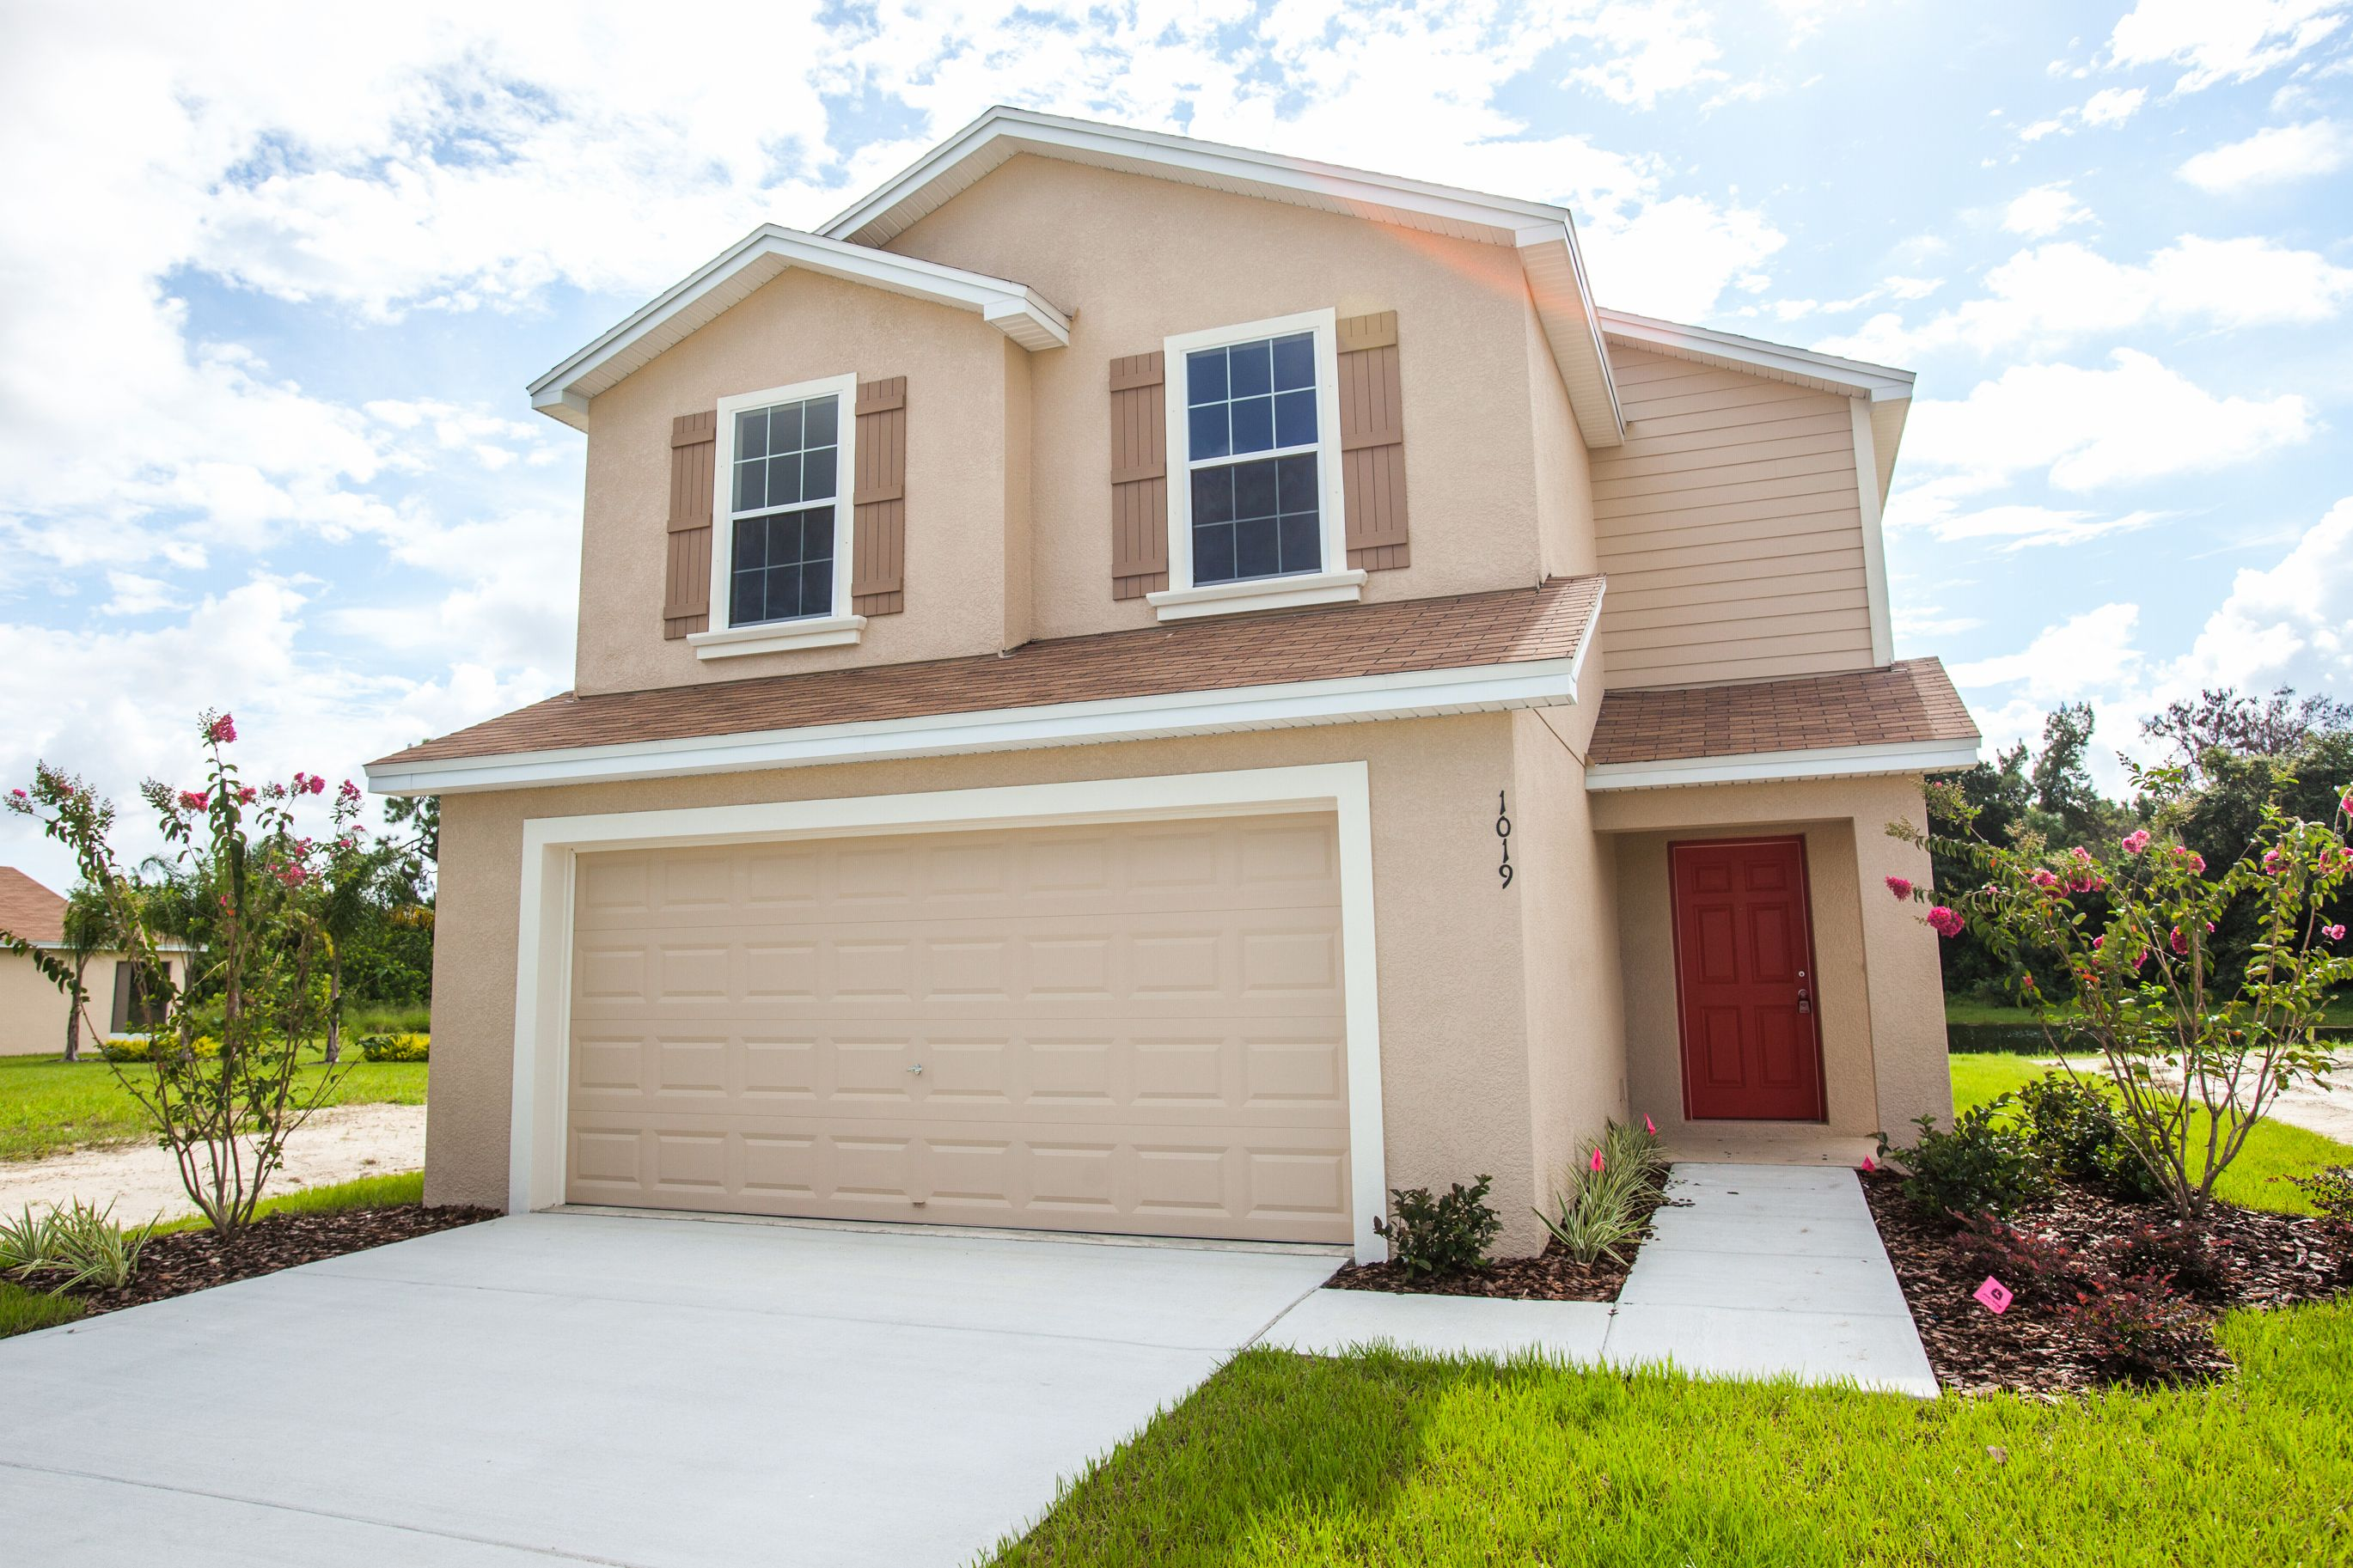 harmony by highland homes click here to view more photos of this